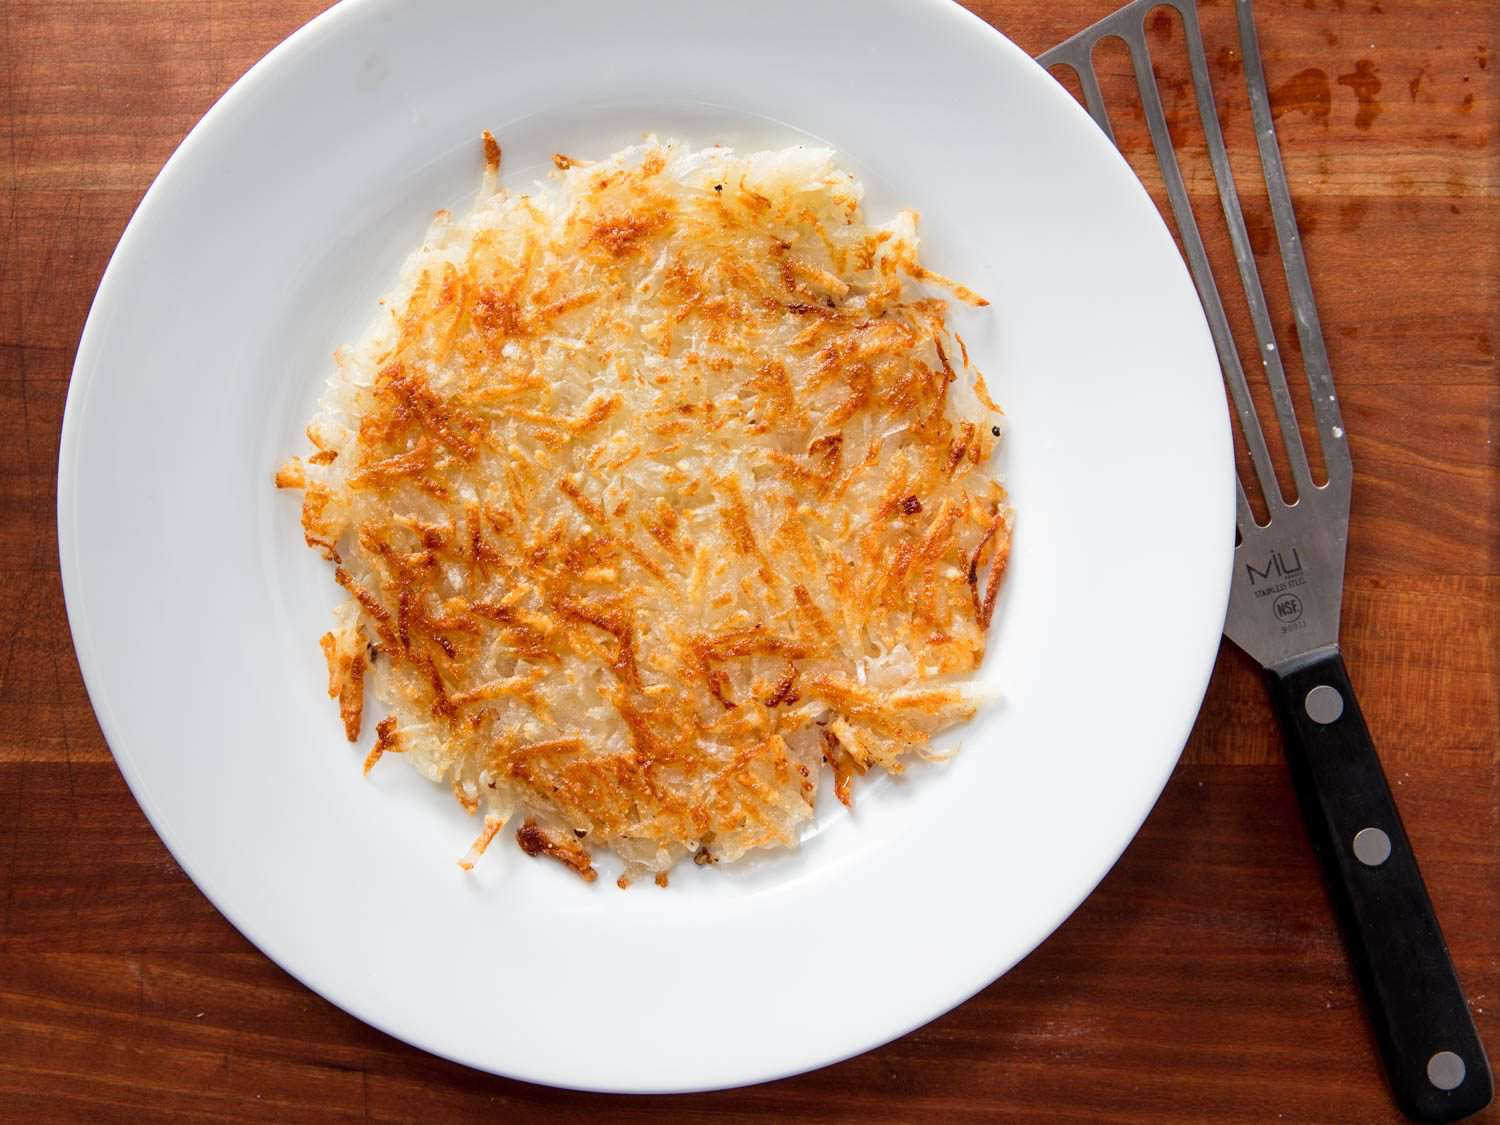 Golden hash browns on a white plate, next to a thin metal fish spatula